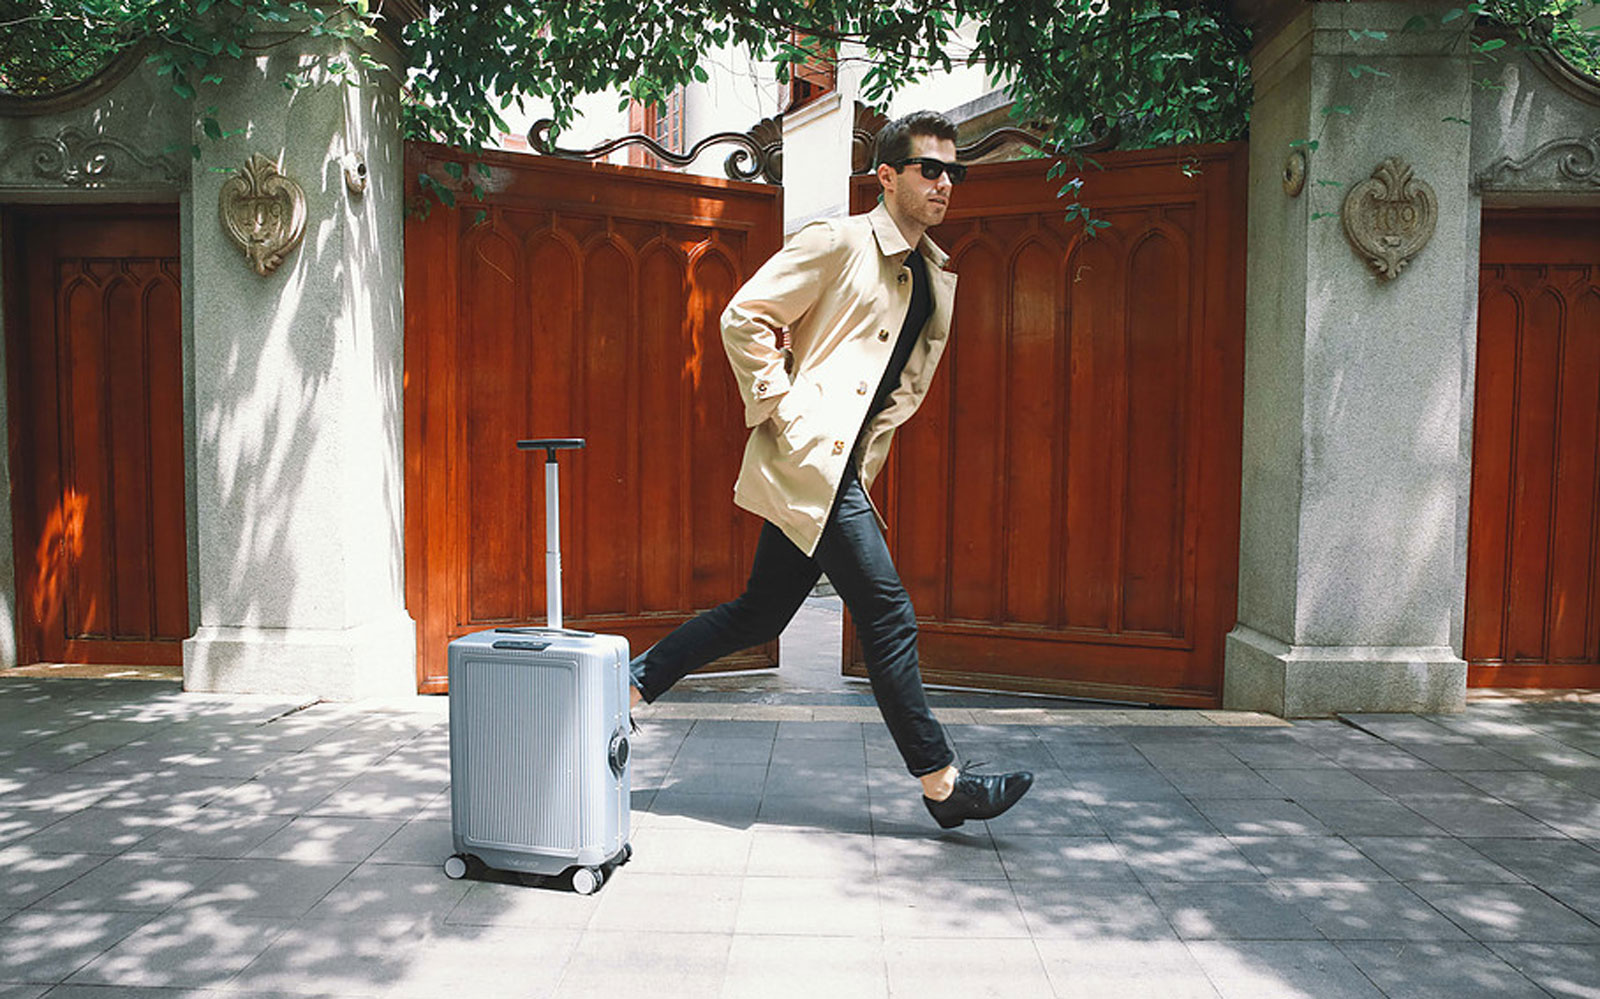 Robotic suitcase follows you around